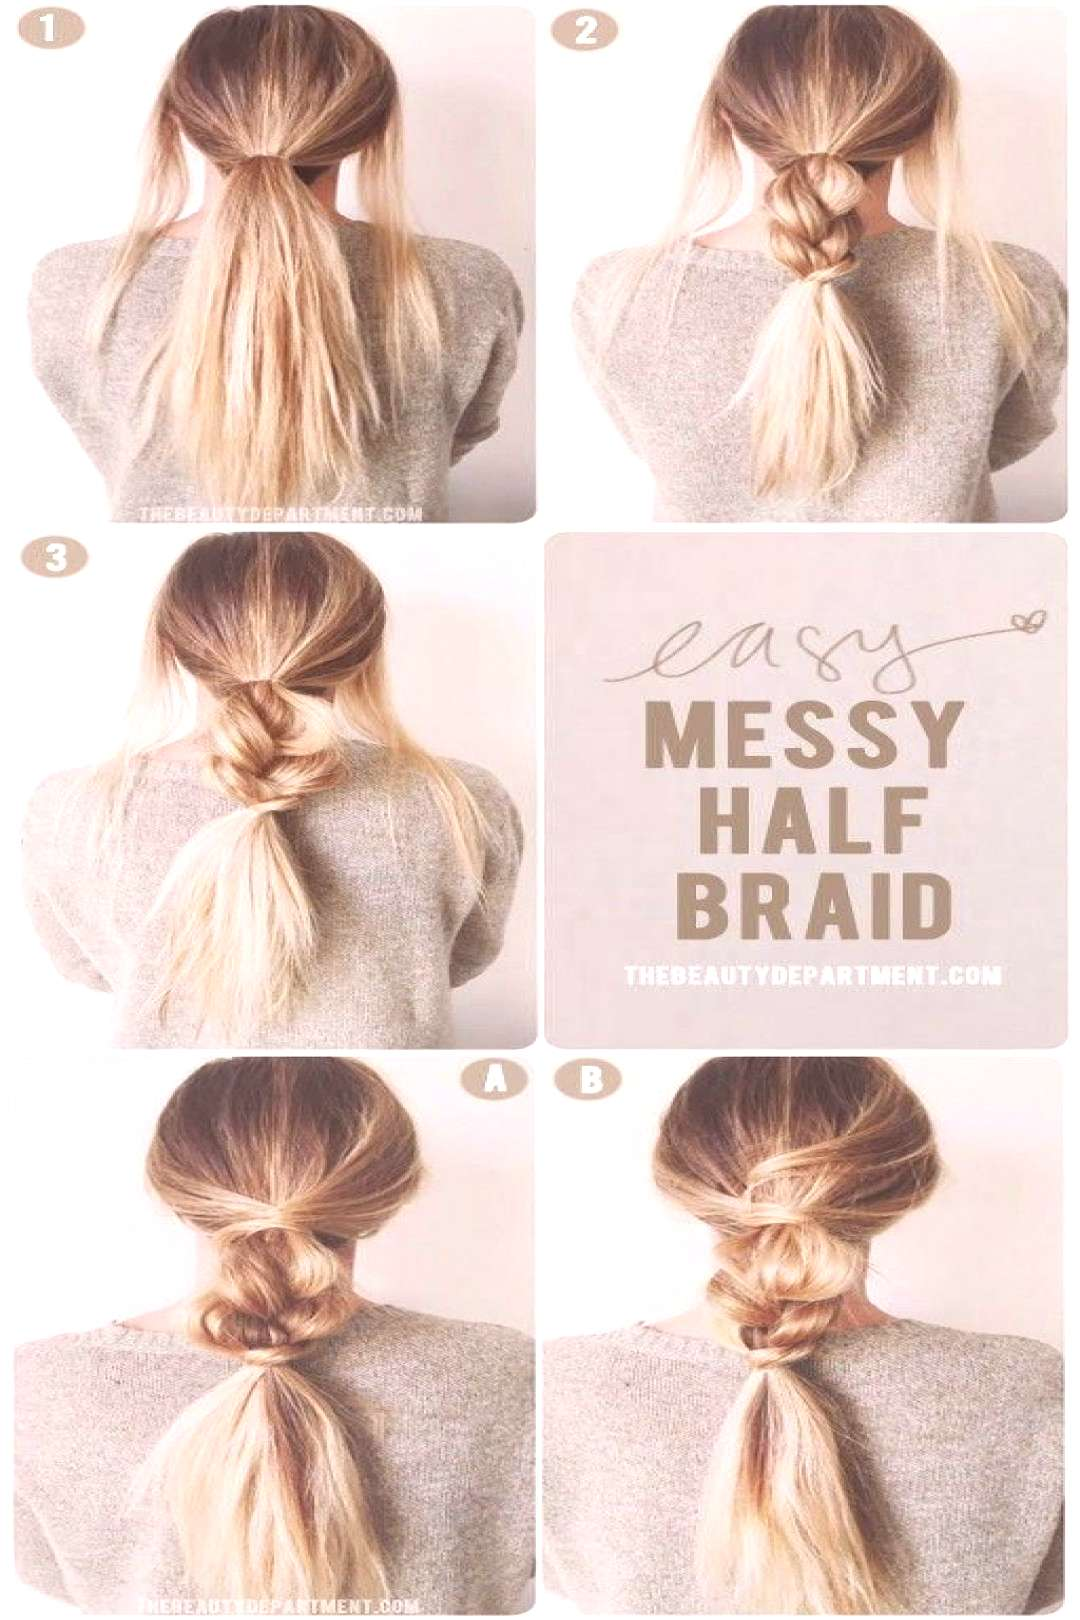 Don't Know What To Do With Your Hair Check Out This Trendy Ghana Braided Hairstyle